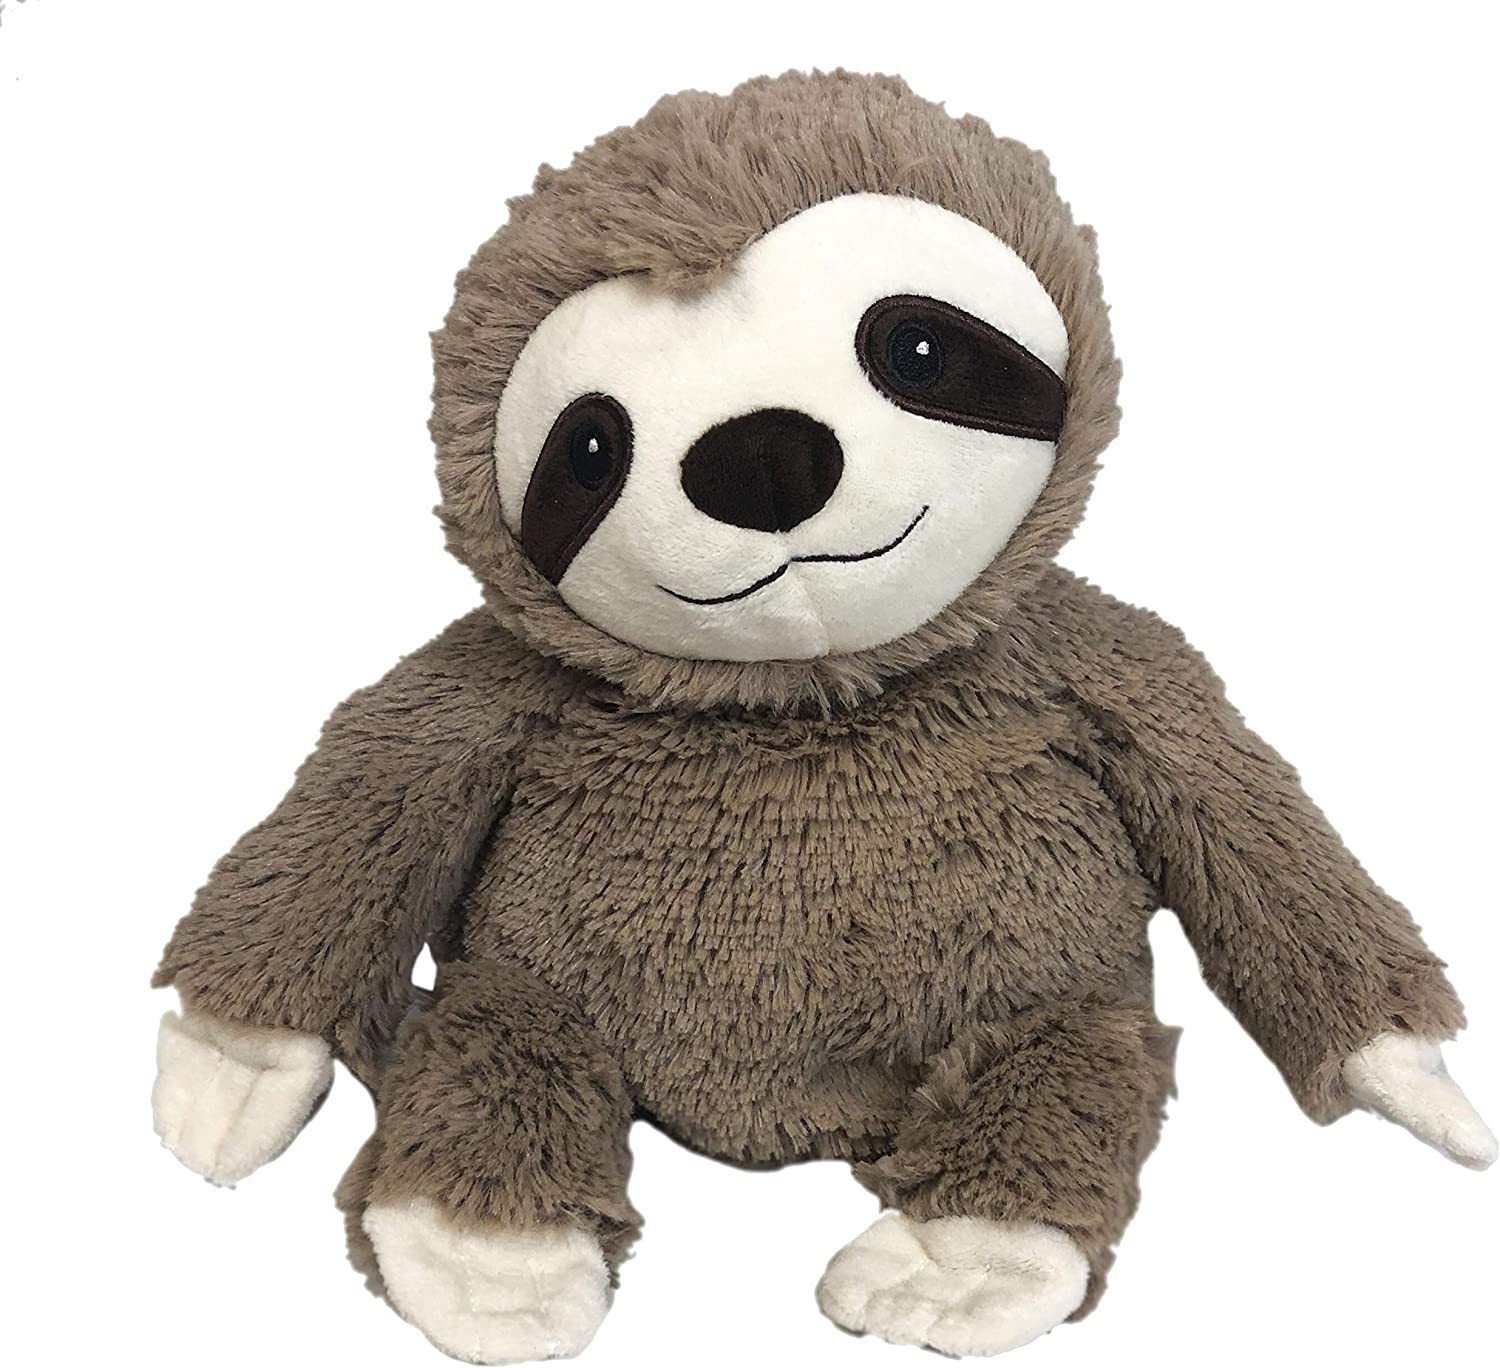 Warmies Microwavable French Lavender Scented Plush Sloth